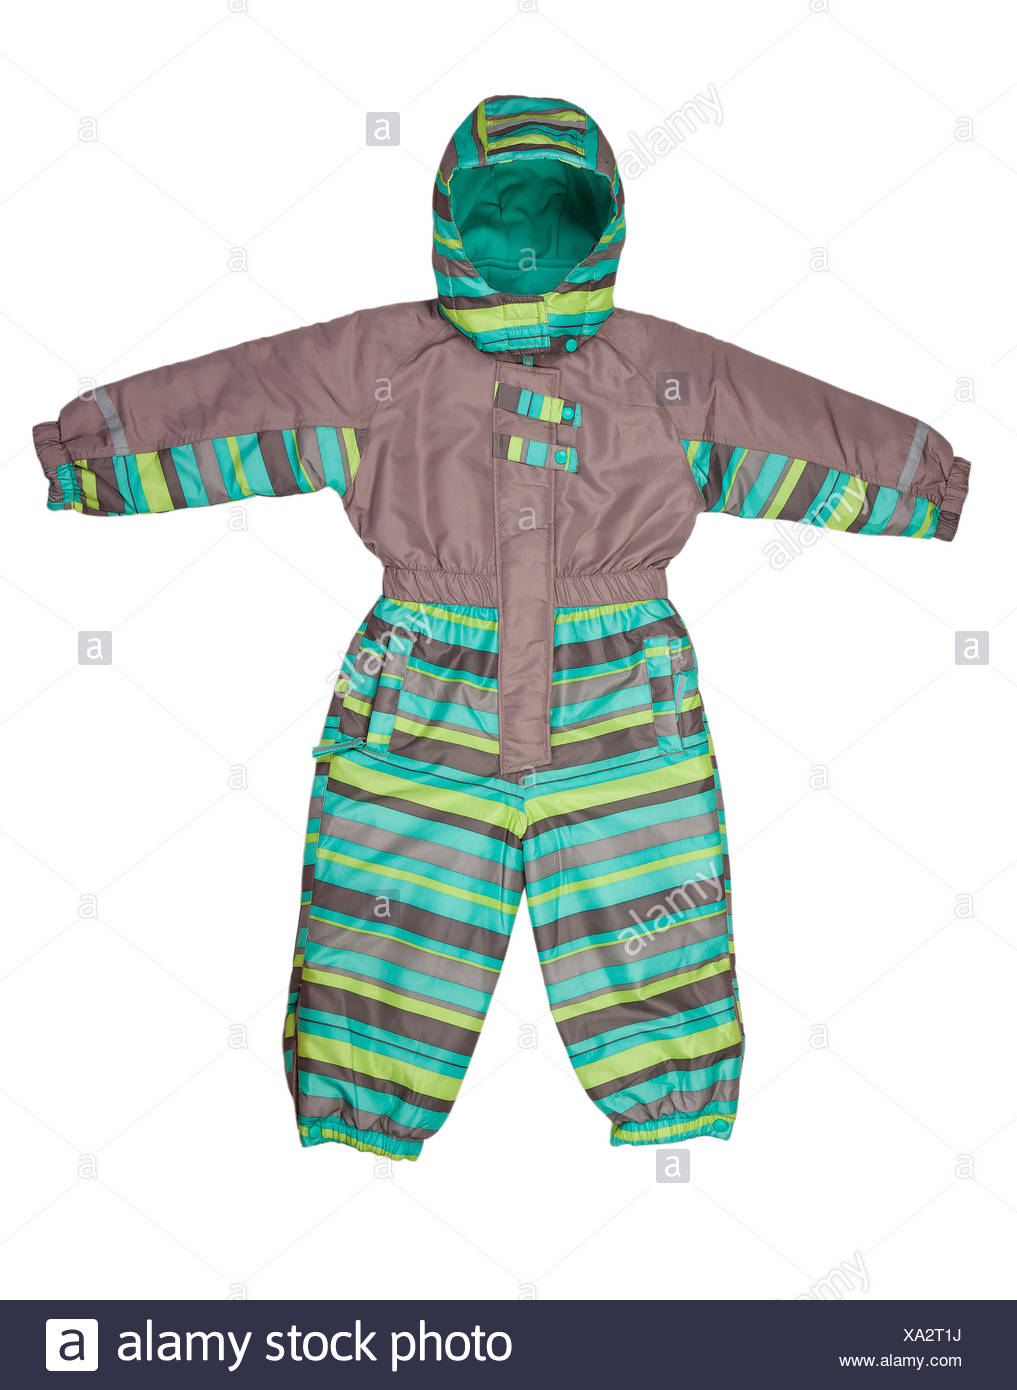 Winter rompers - Stock Image